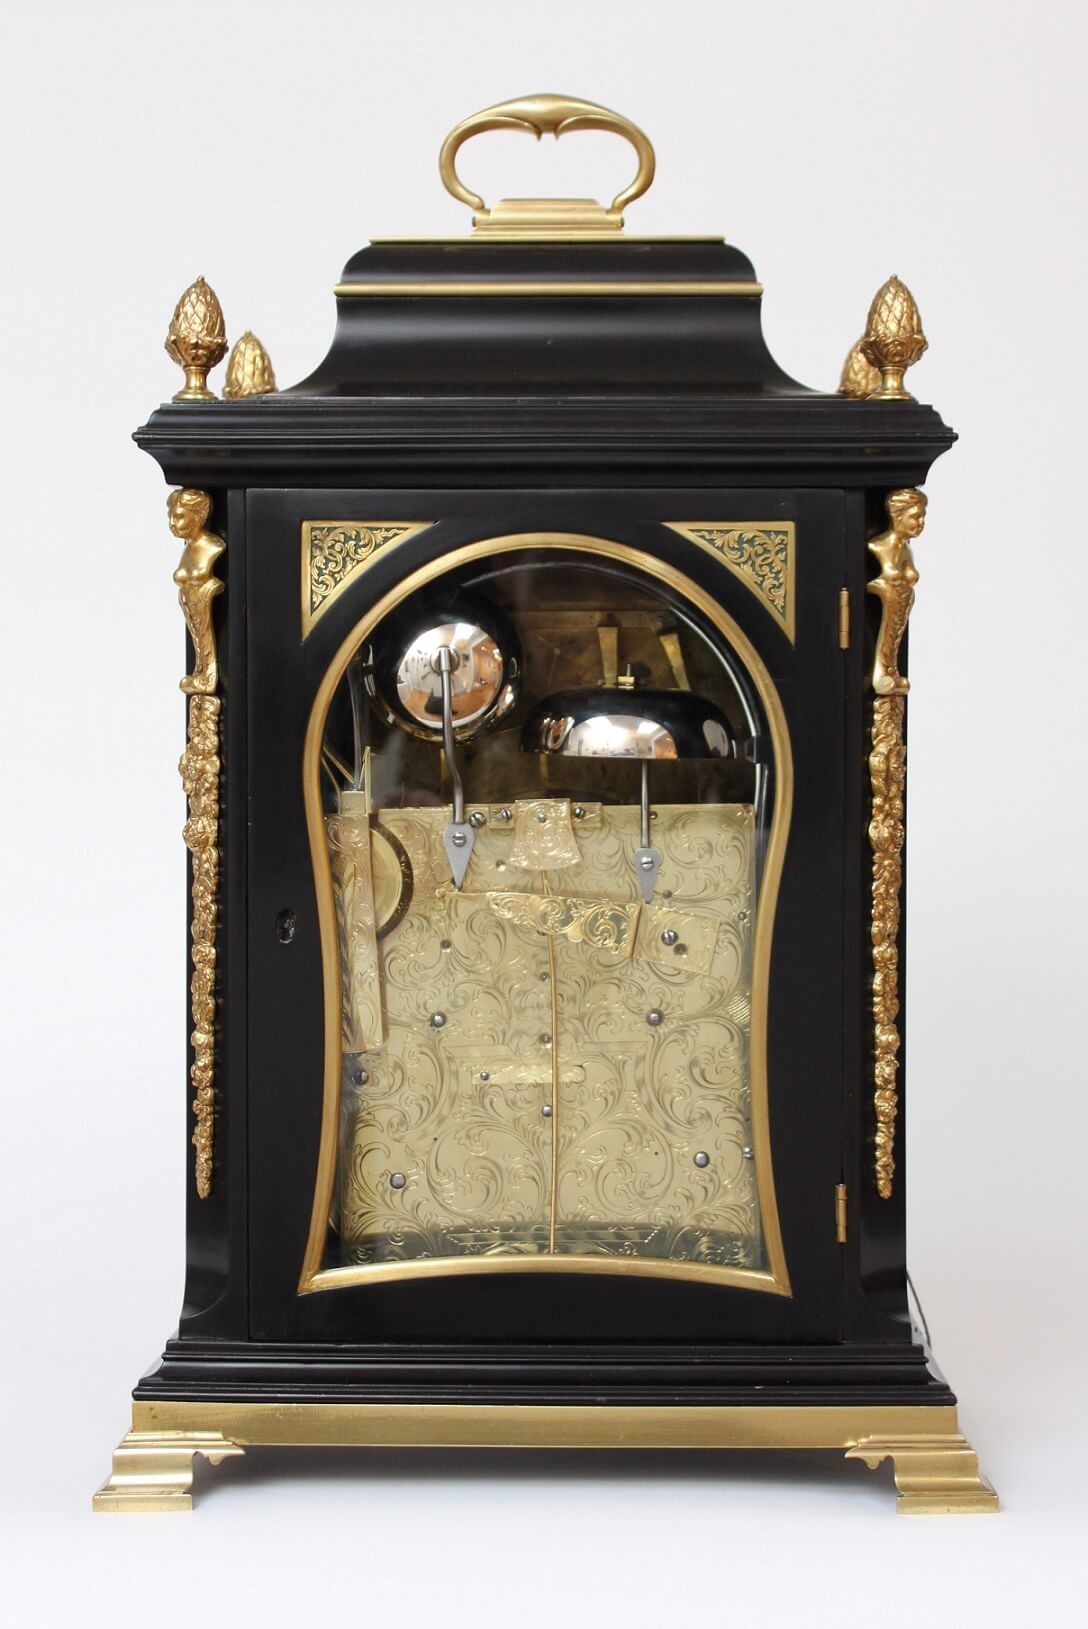 English-table Clock-antique Clock-musical-automaton-animated-Rimbault-London-striking